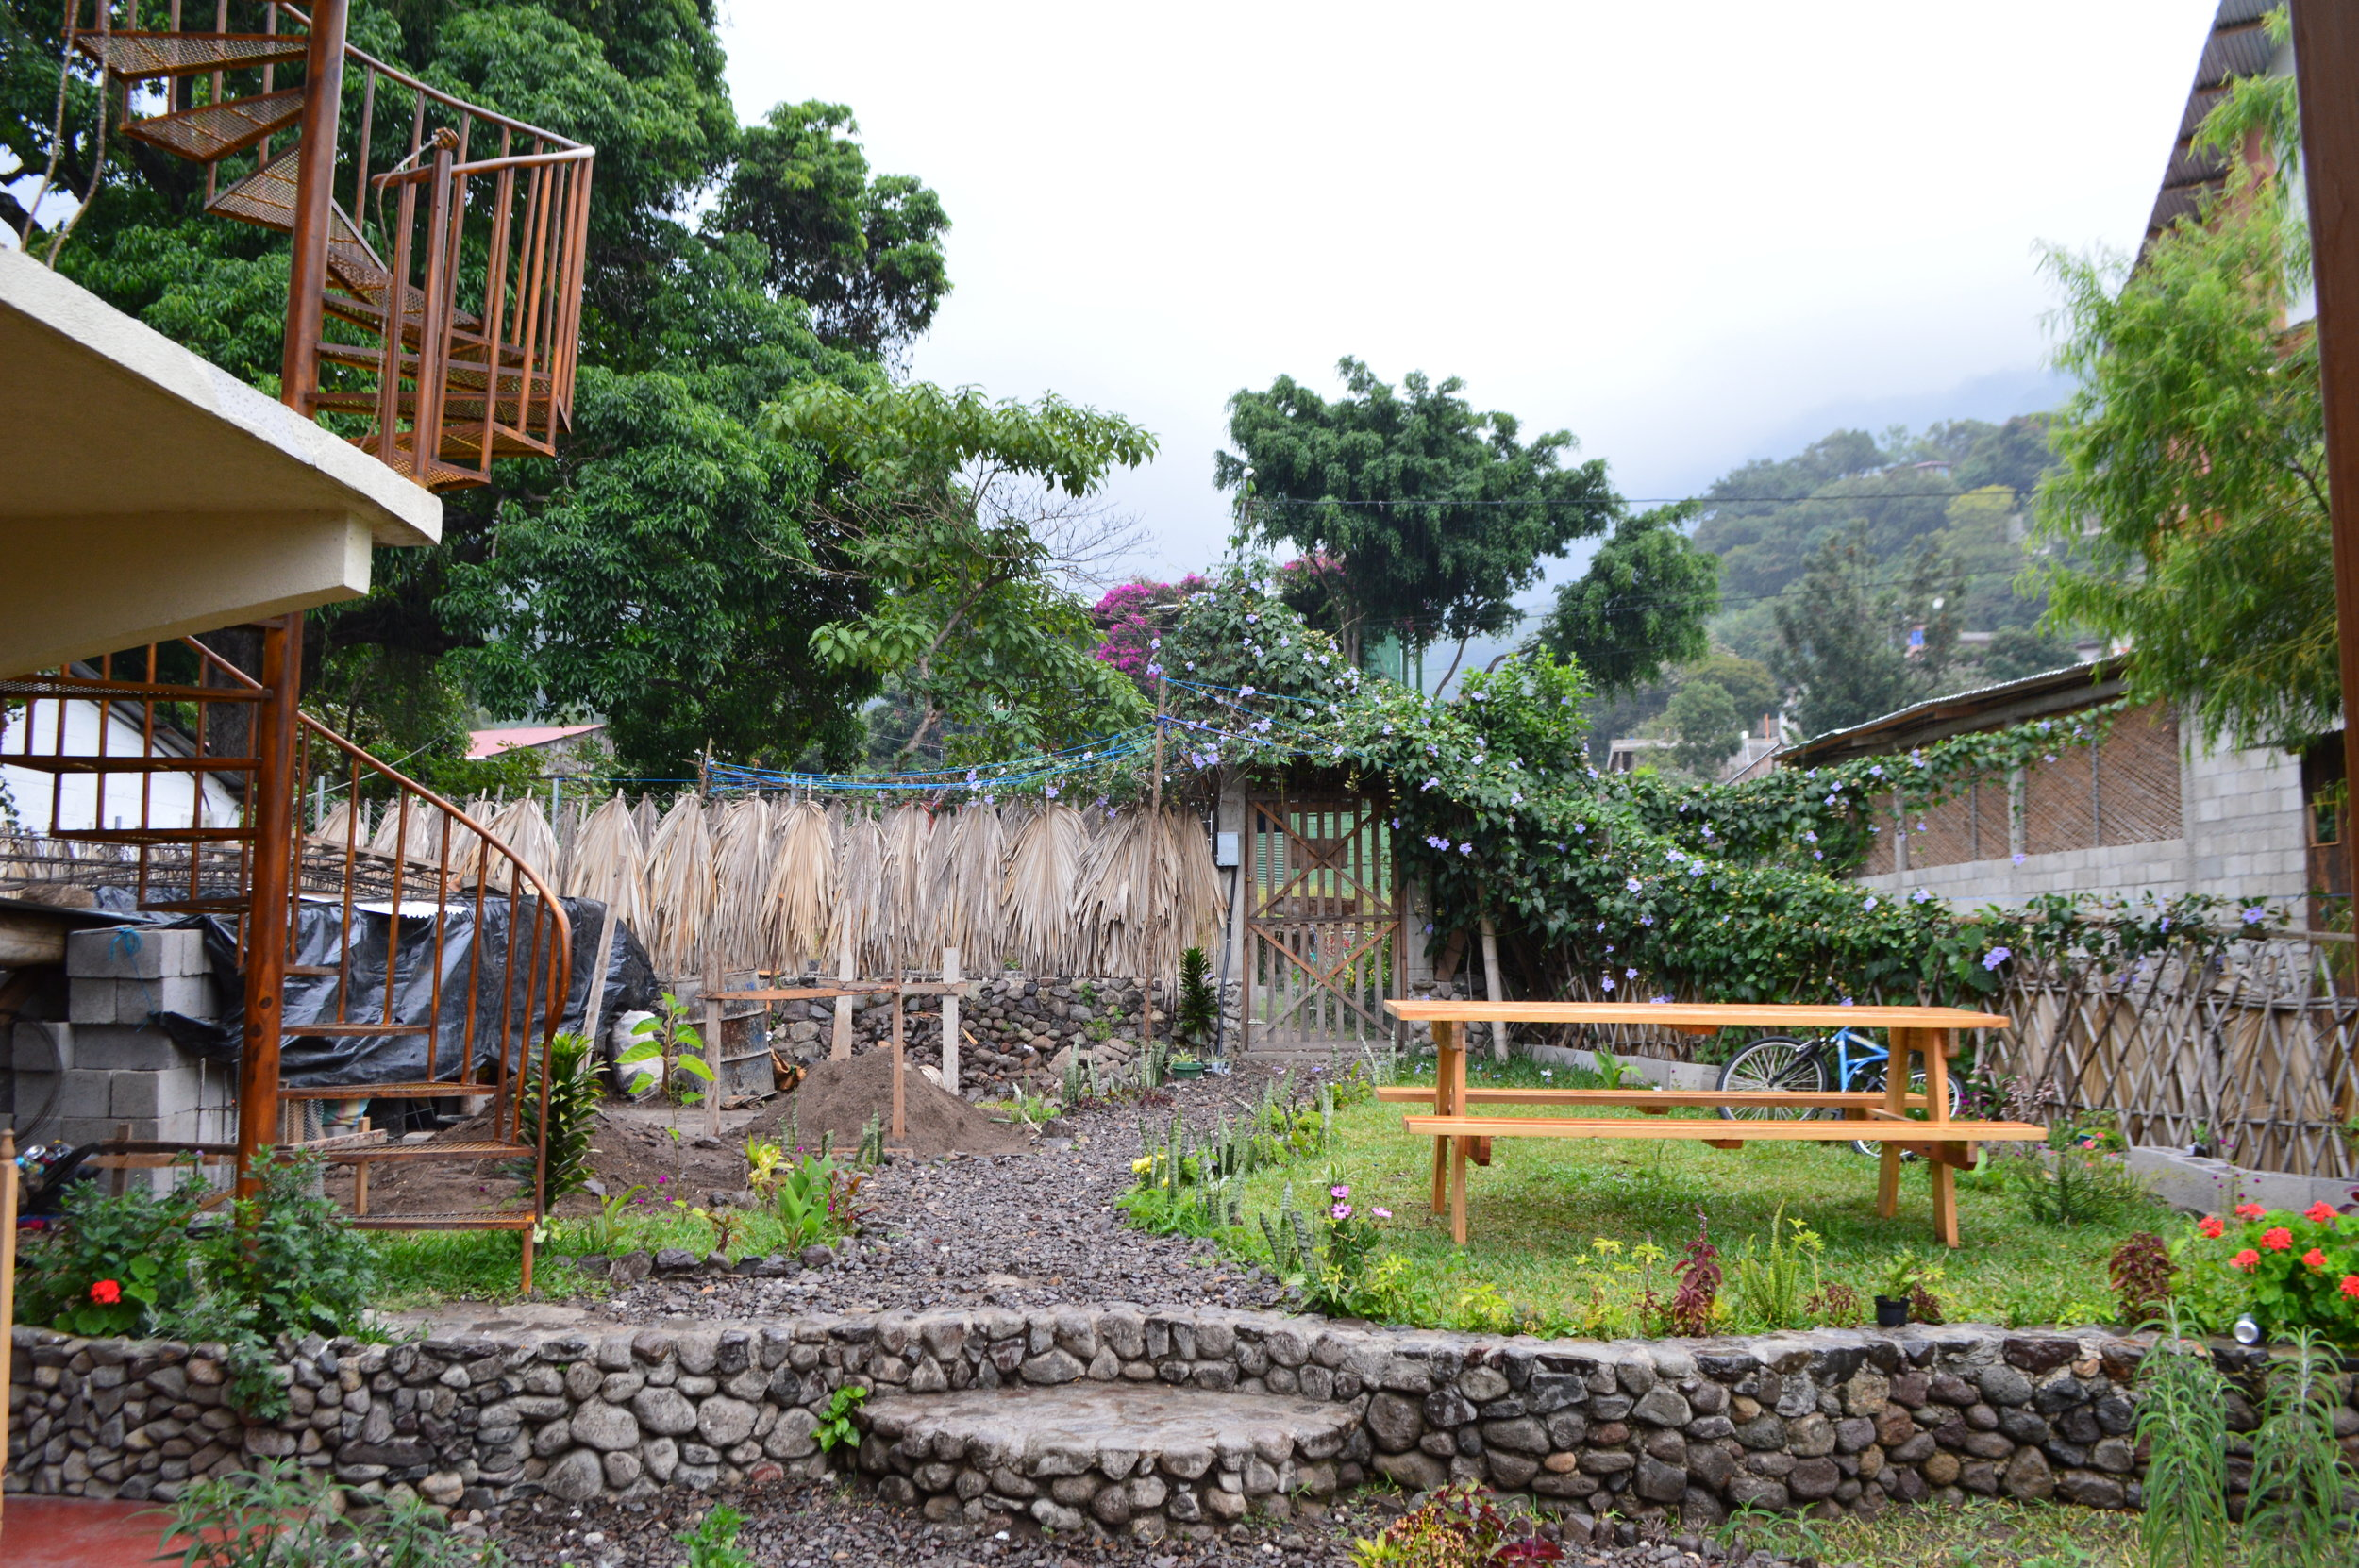 The garden area of Casa Madera, the hostel we stayed at in San Marcos.